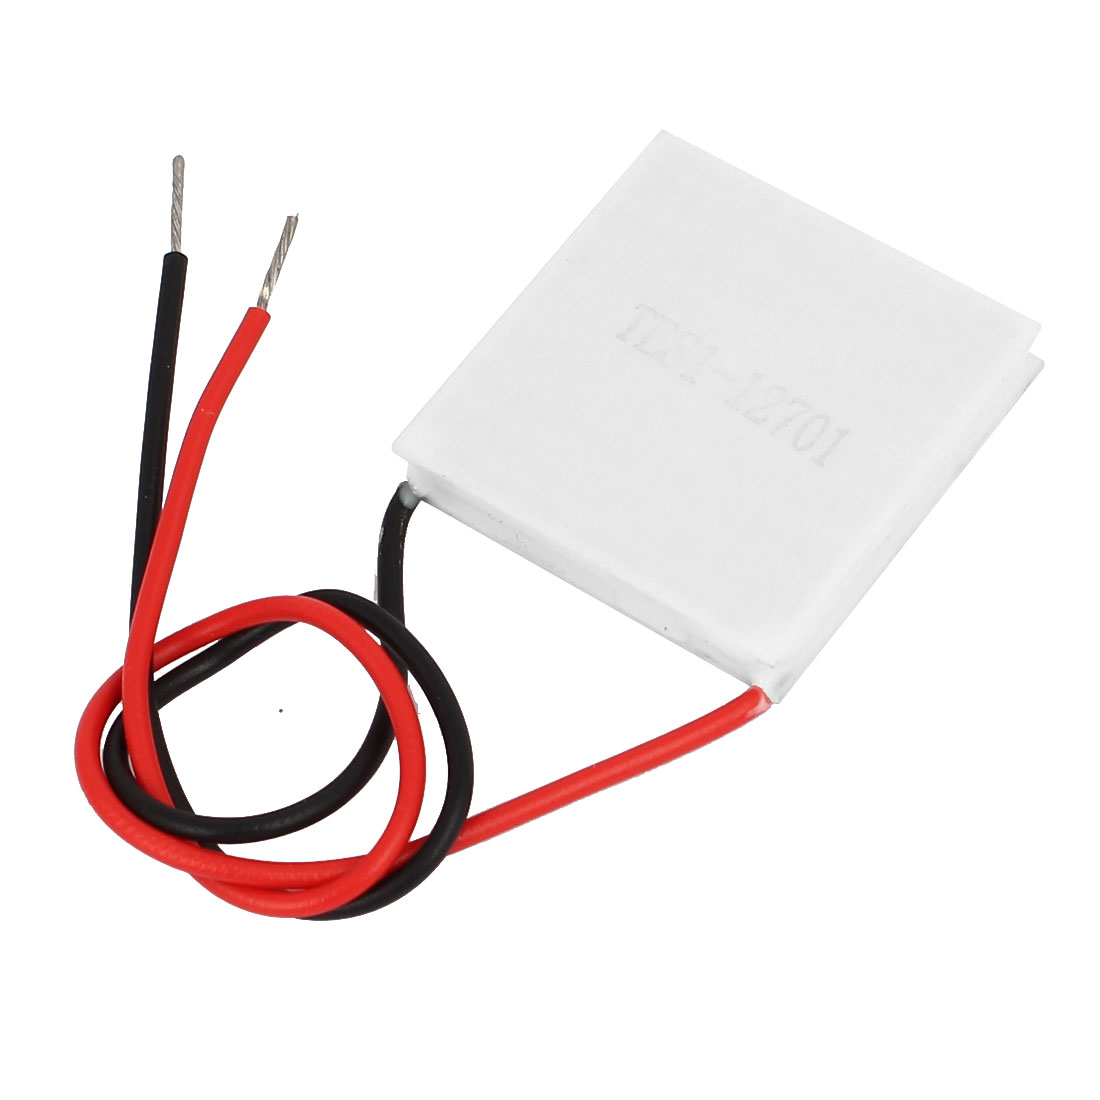 TES1-12701 1.3A 15V 30x30x5mm Thermoelectric Cooler Peltier Plate Module